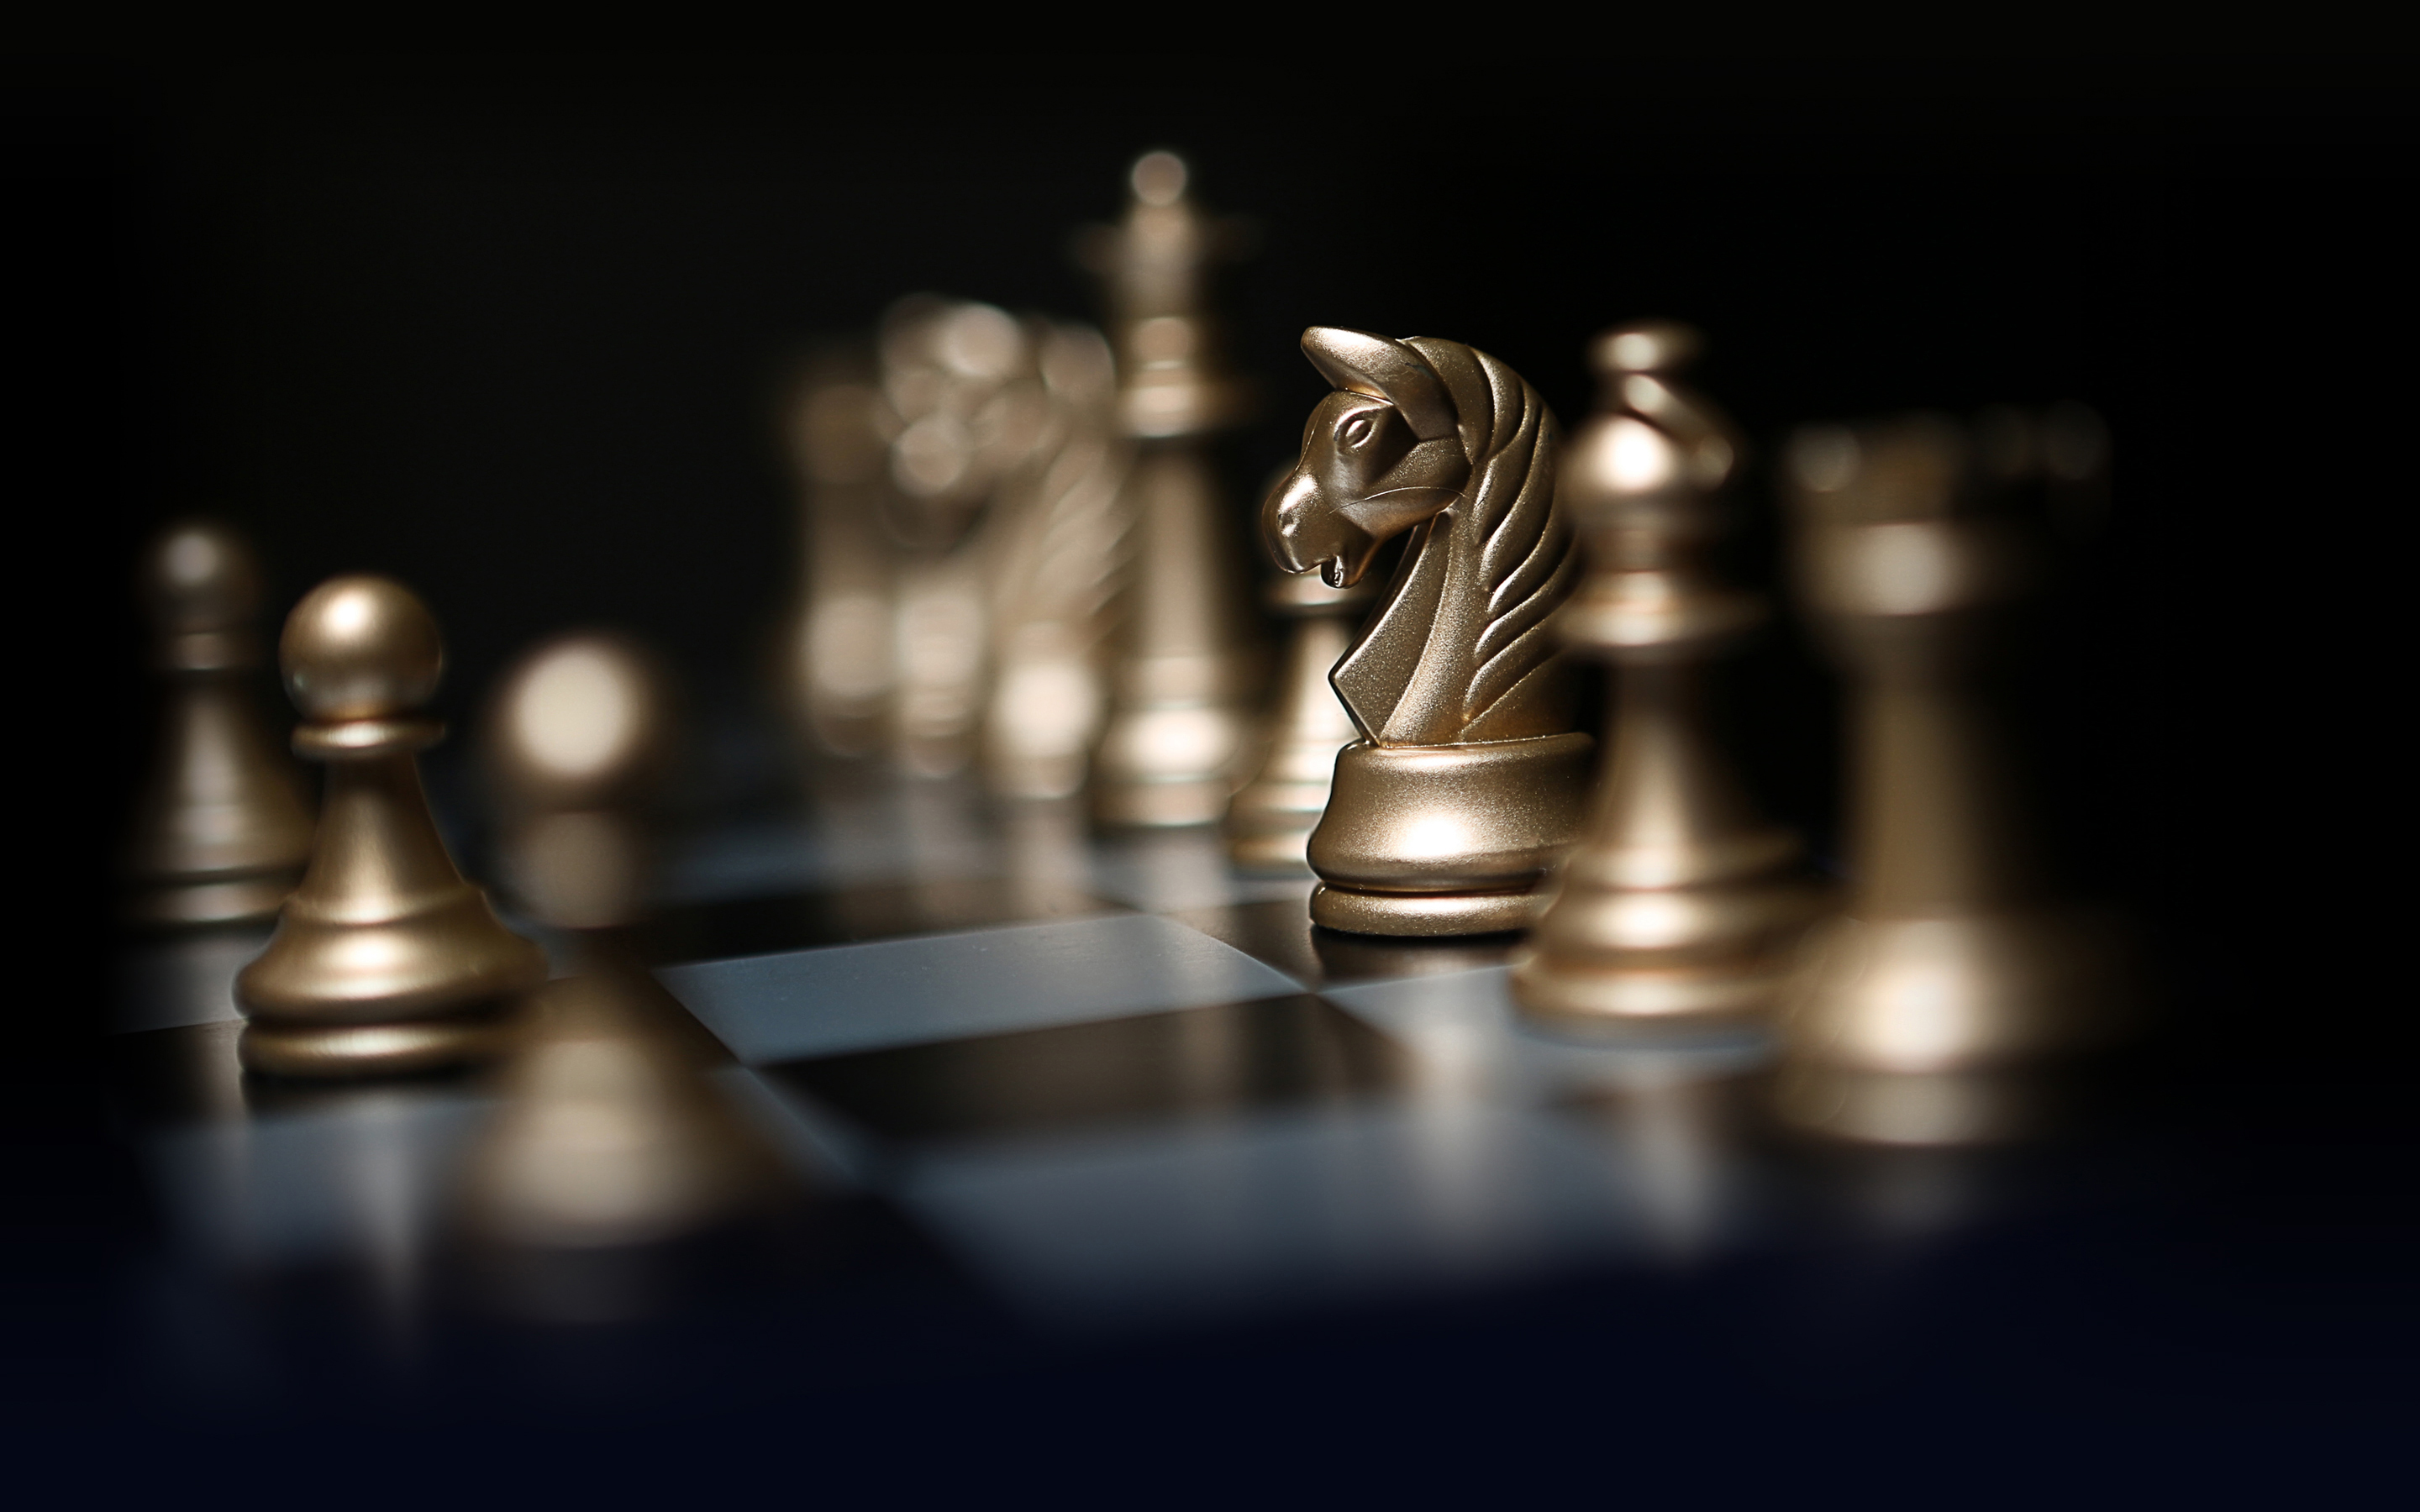 Iphone X Wallpaper Transparent Chess Hd Wallpapers Hd Wallpapers Id 22994